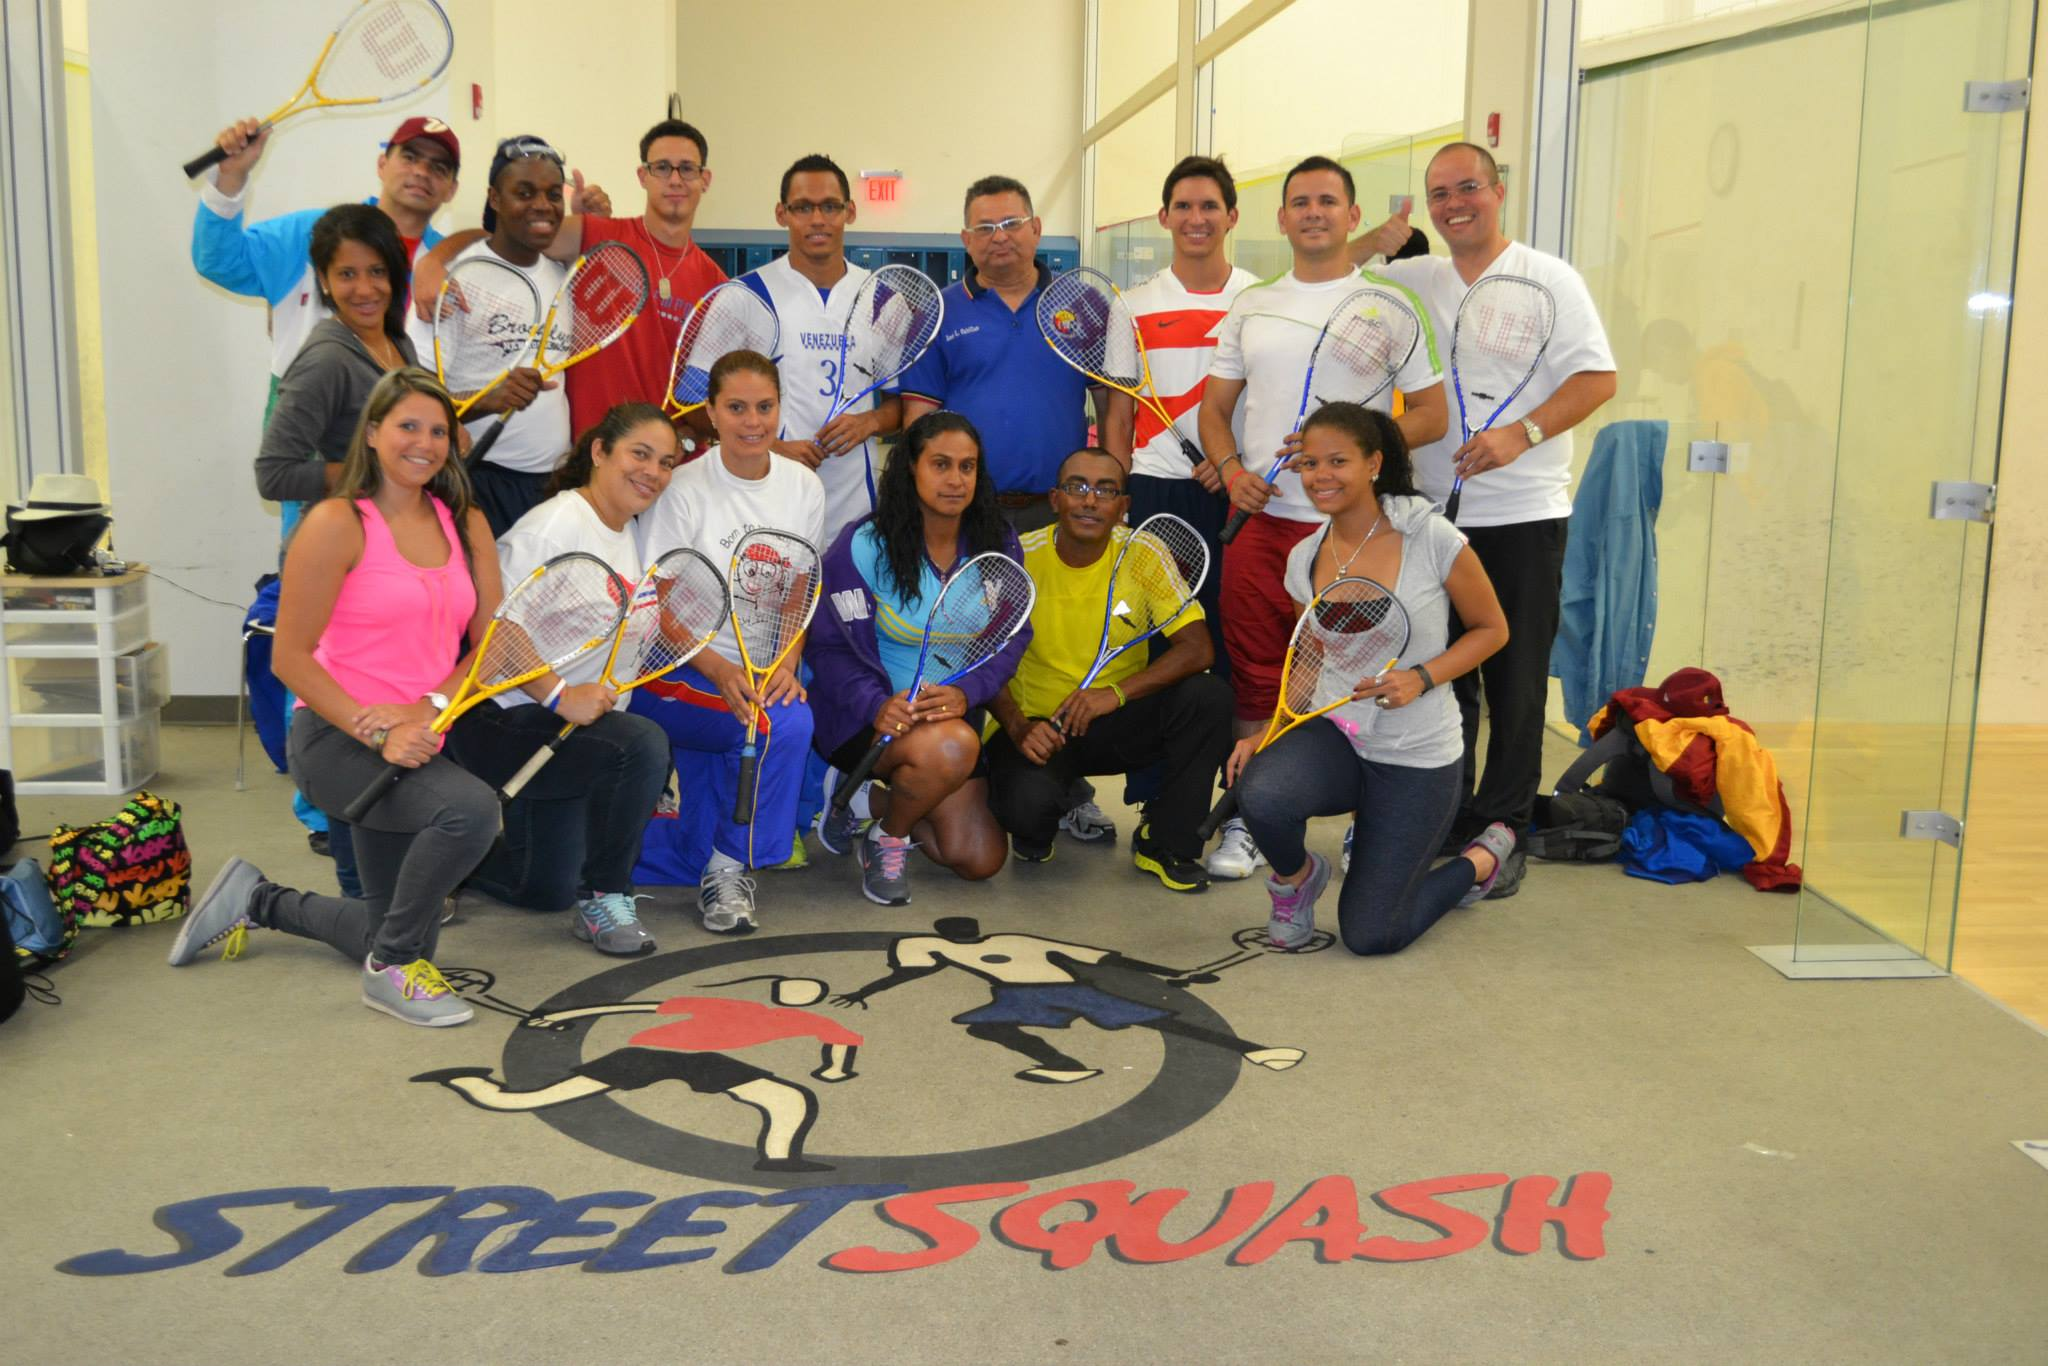 The sports visitors participated in other sports besides soccer including squash and softball